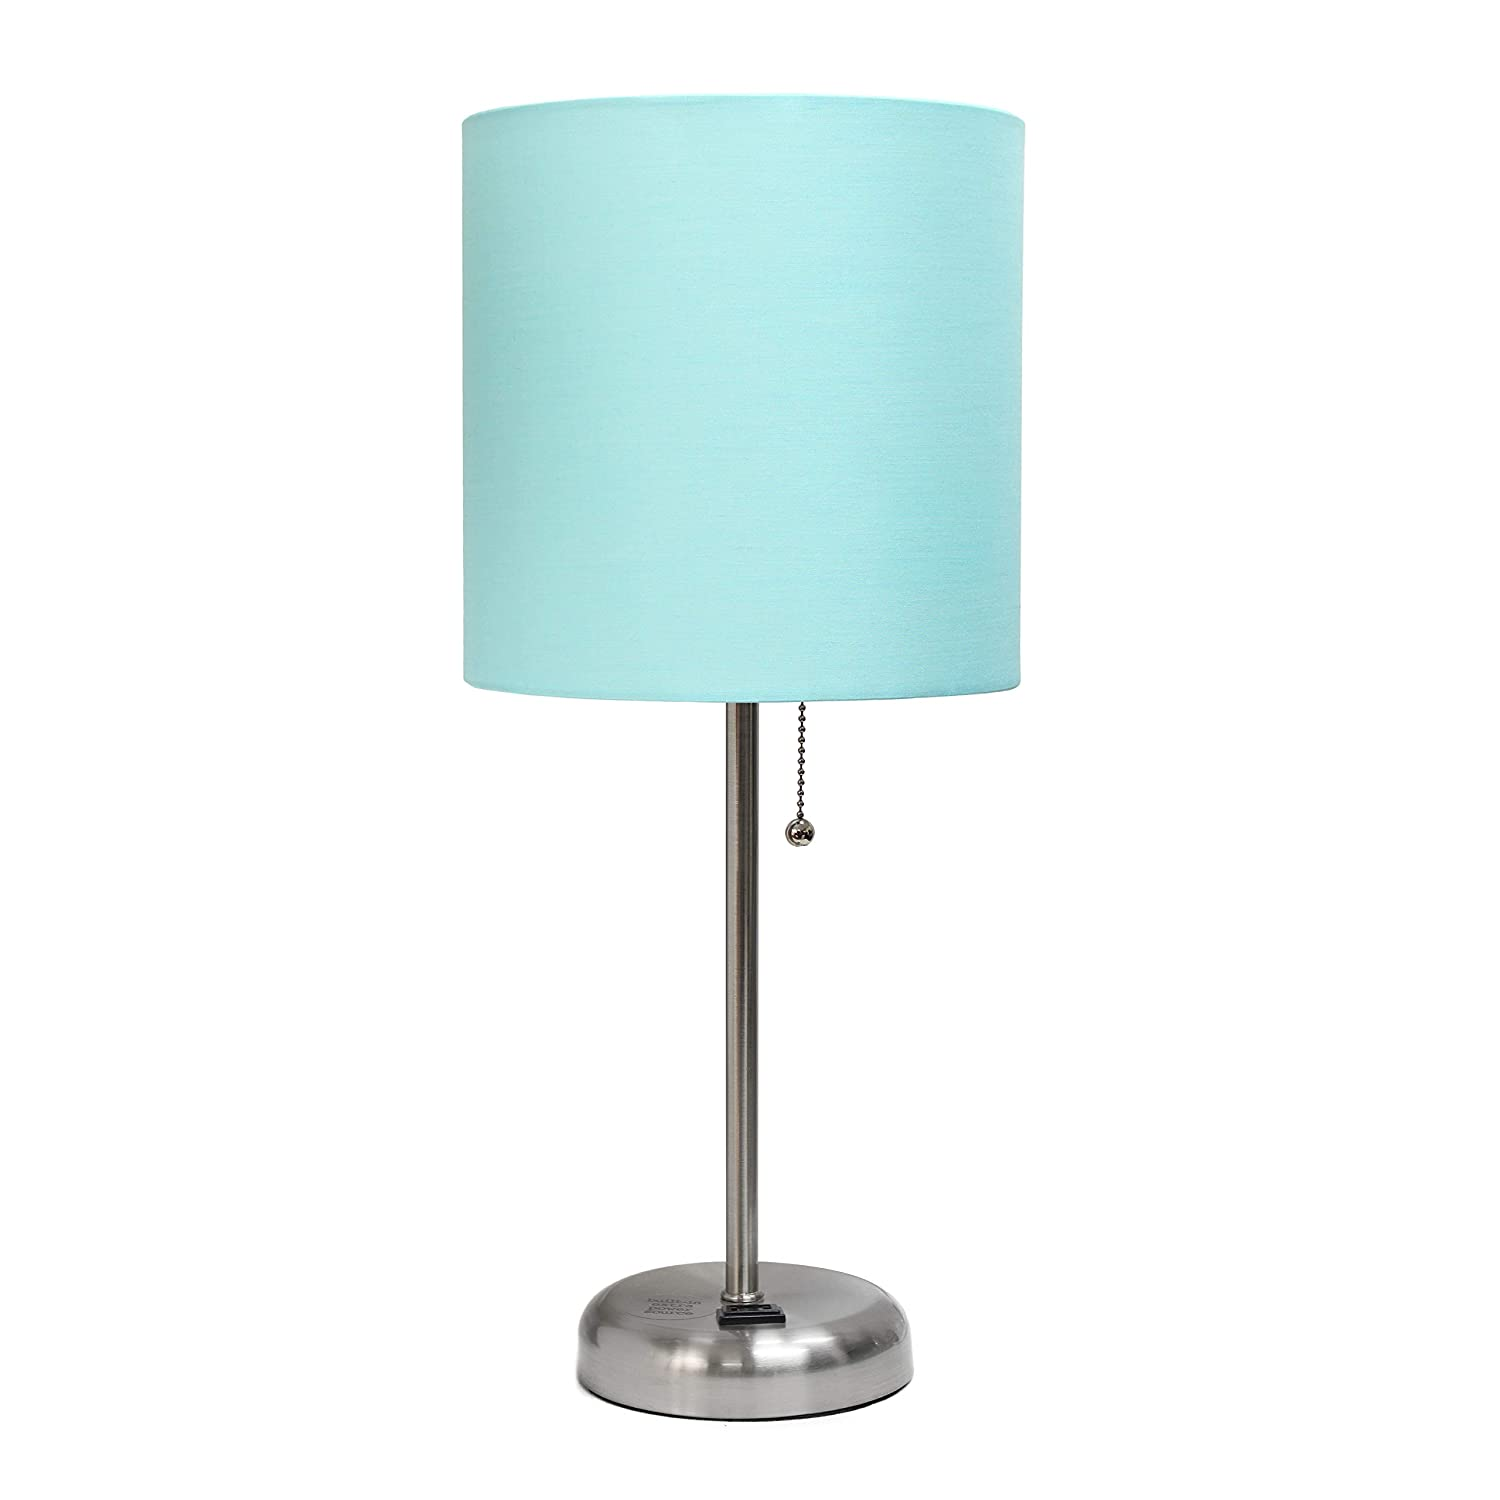 Limelights LT2024-AQU Stick Lamp with Charging Outlet and Fabric Shade, Aqua